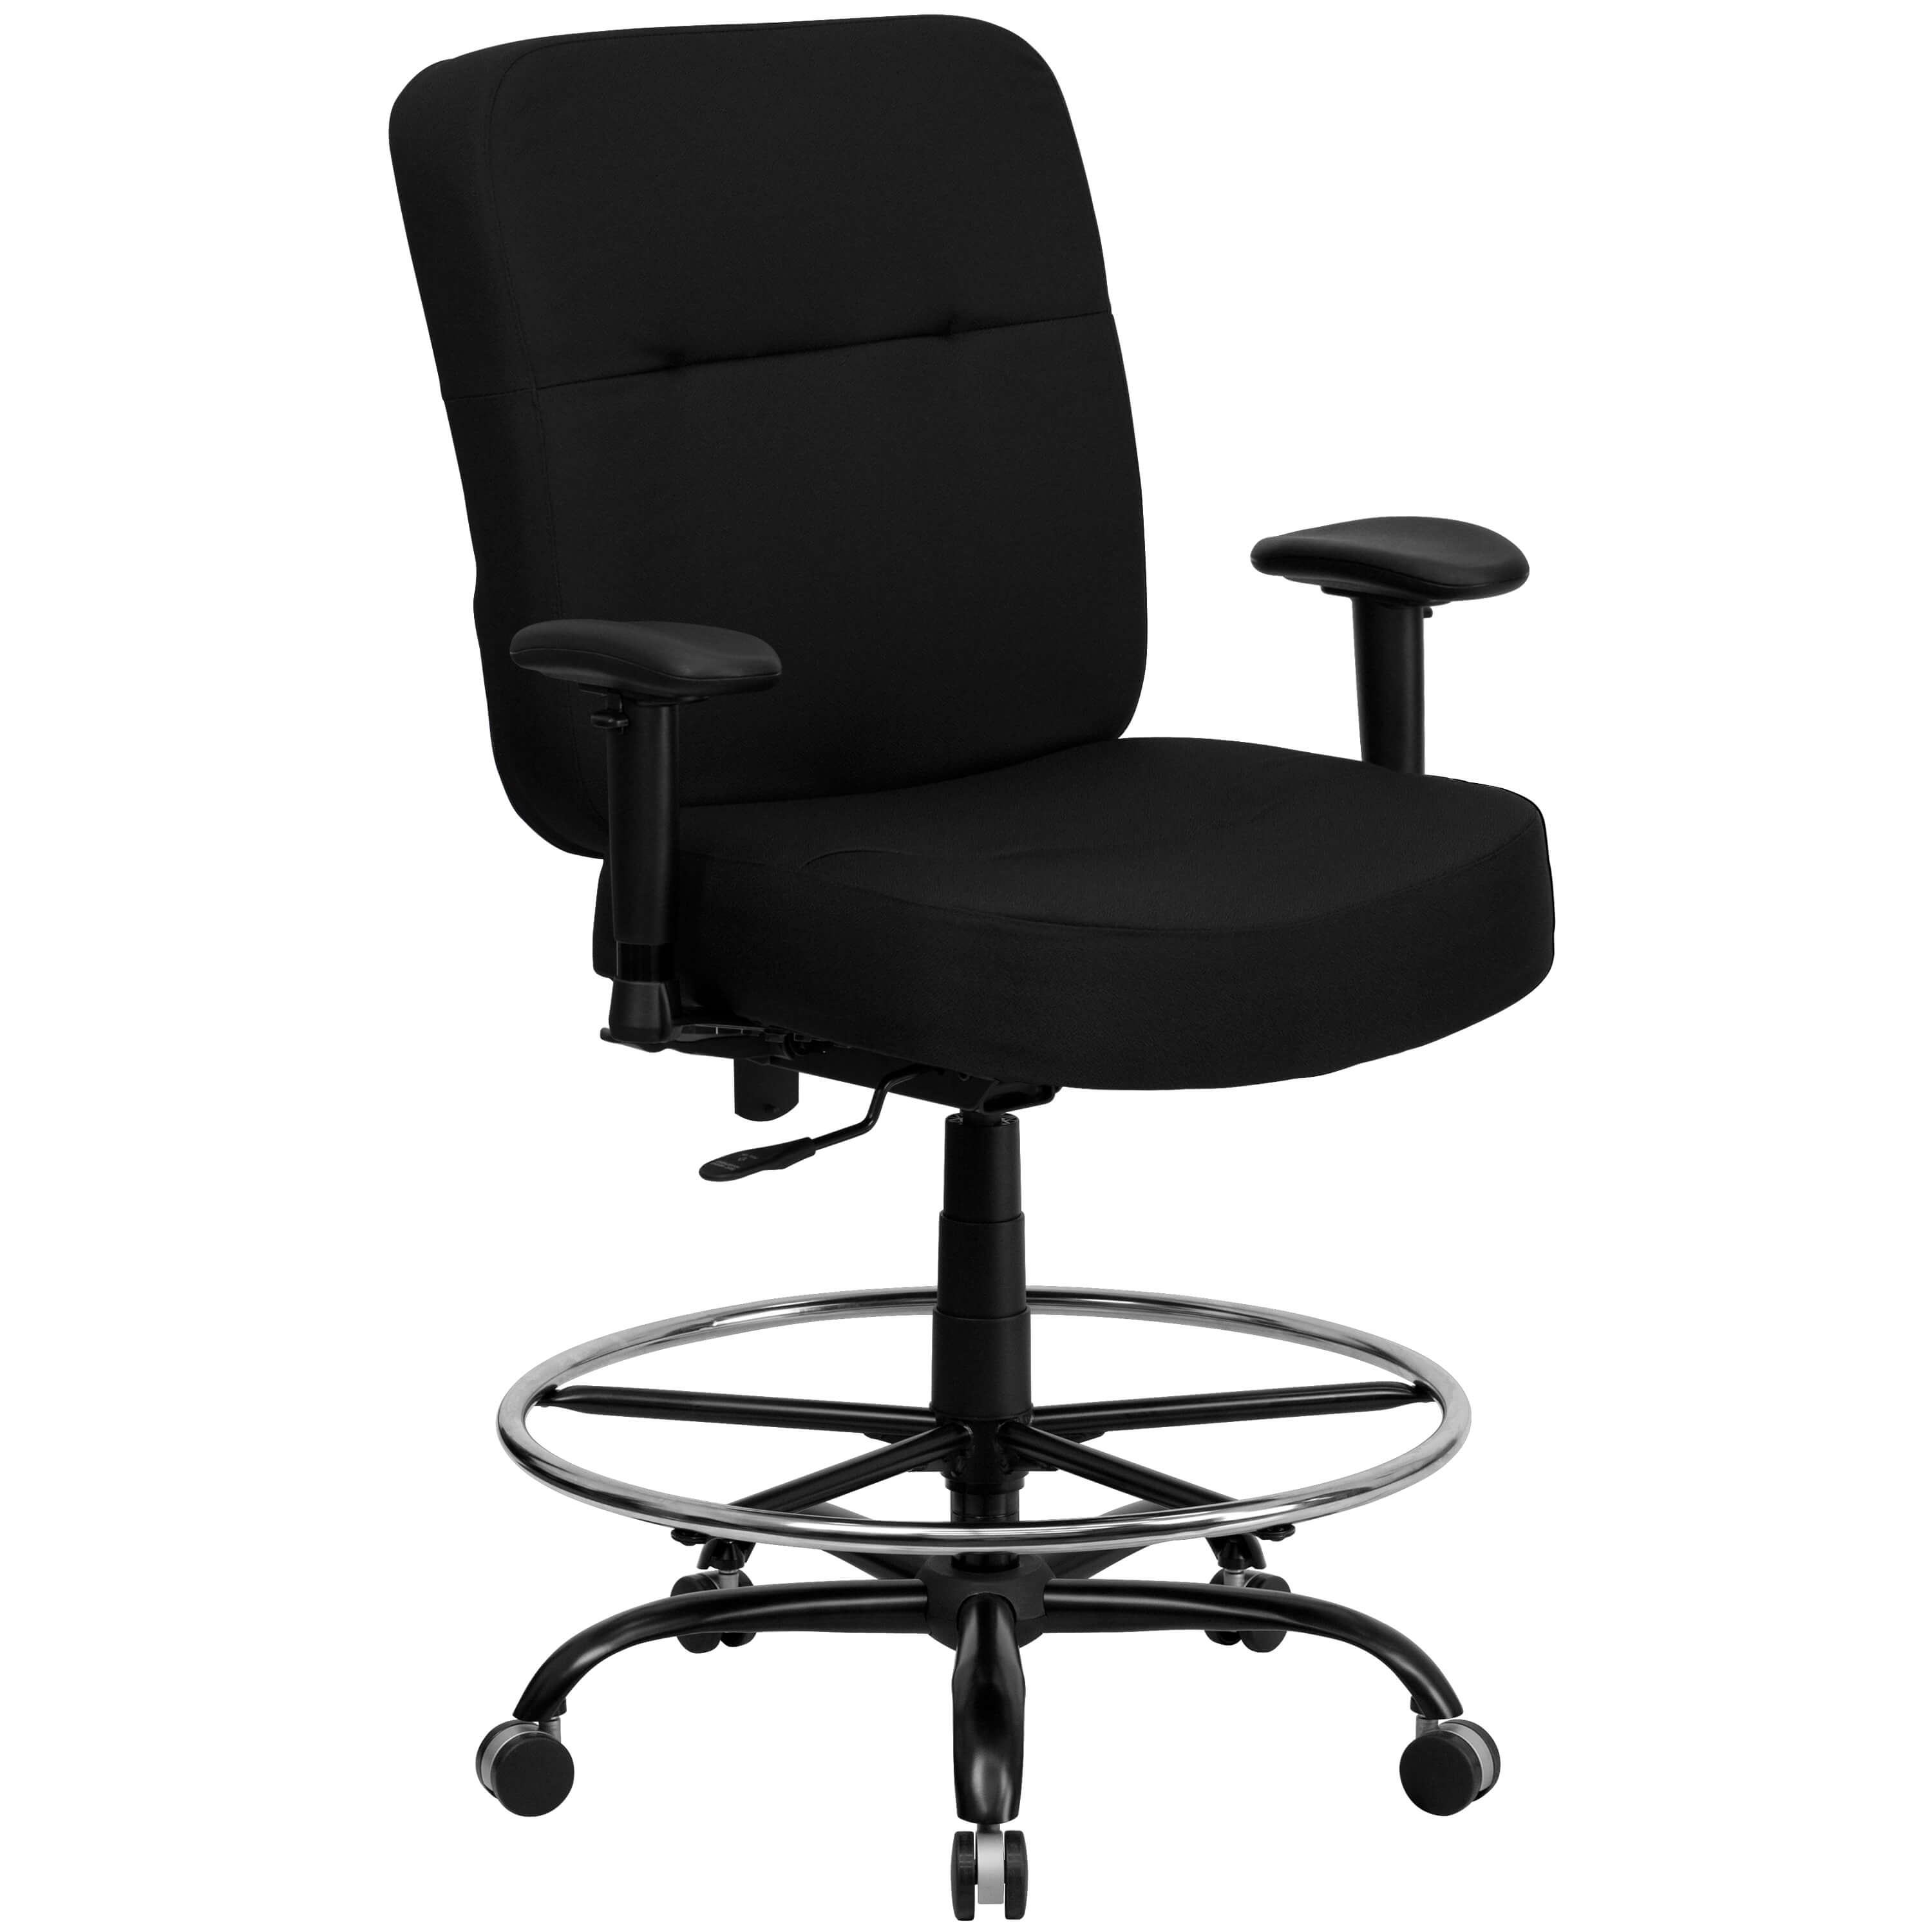 big-and-tall-office-chairs-large-size-office-chairs.jpg